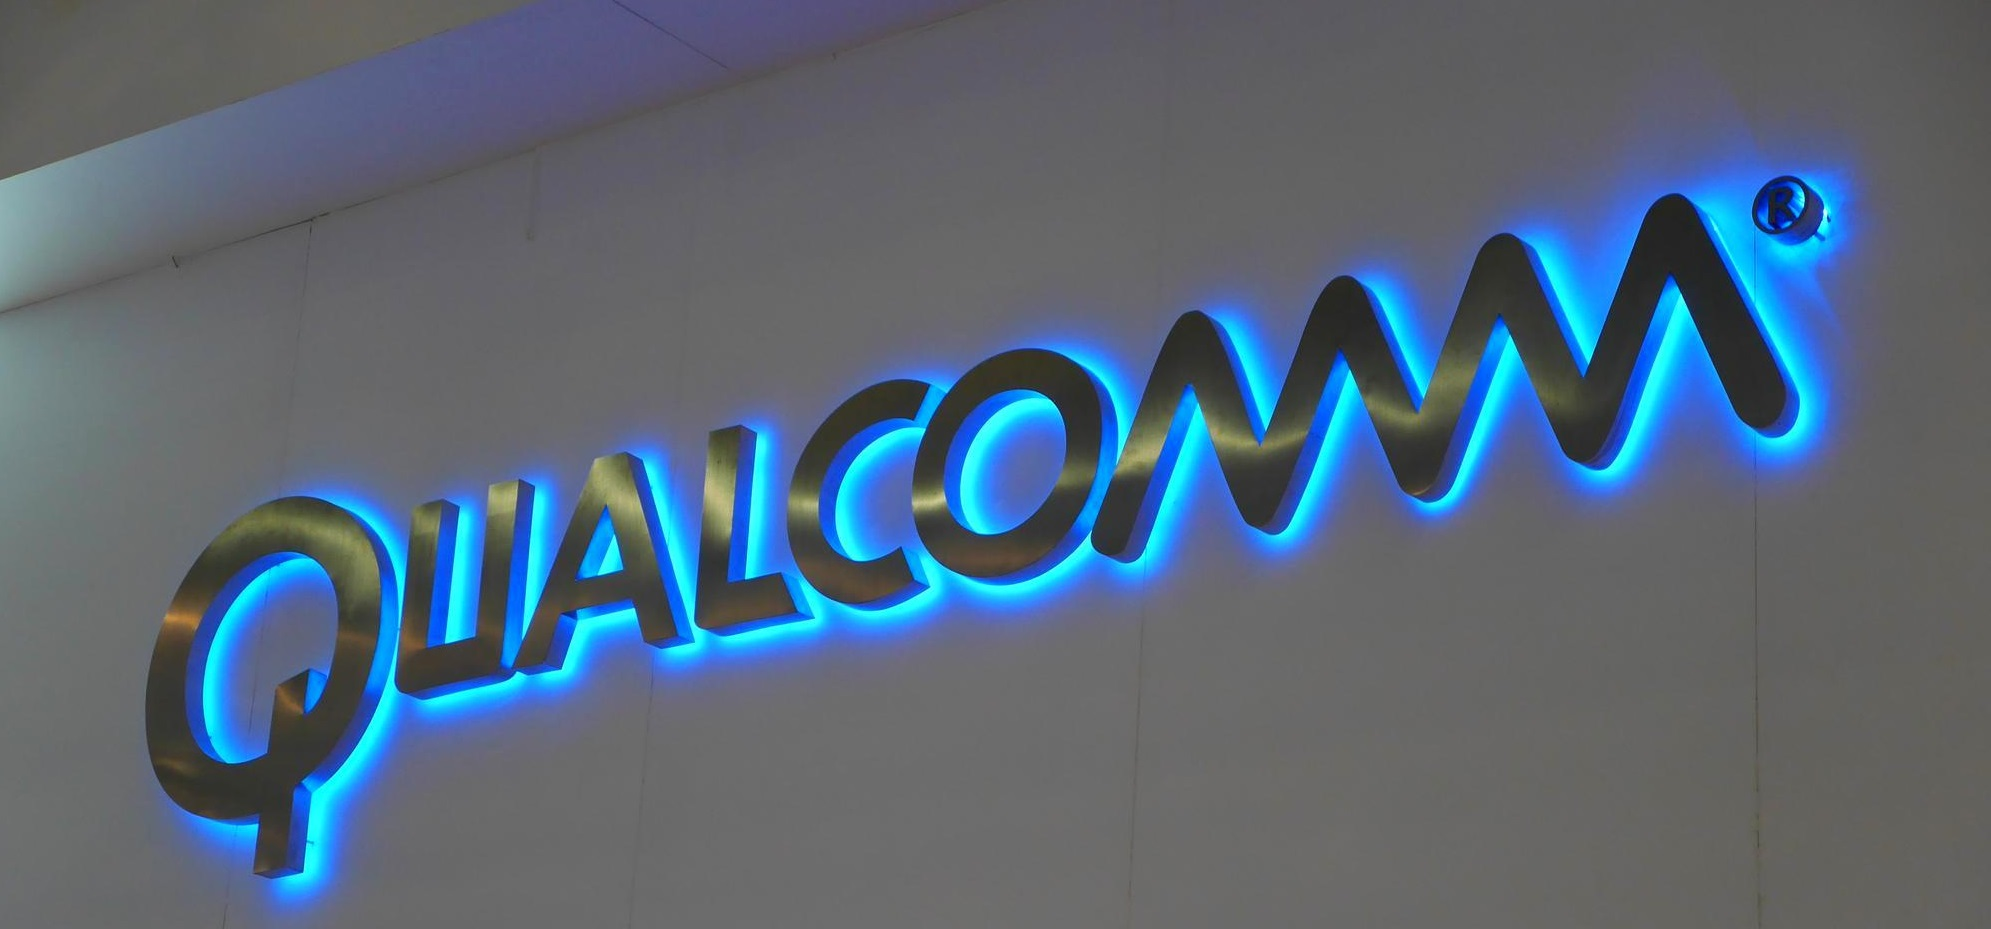 Qualcomm to acquire NXP in history's largest chip deal